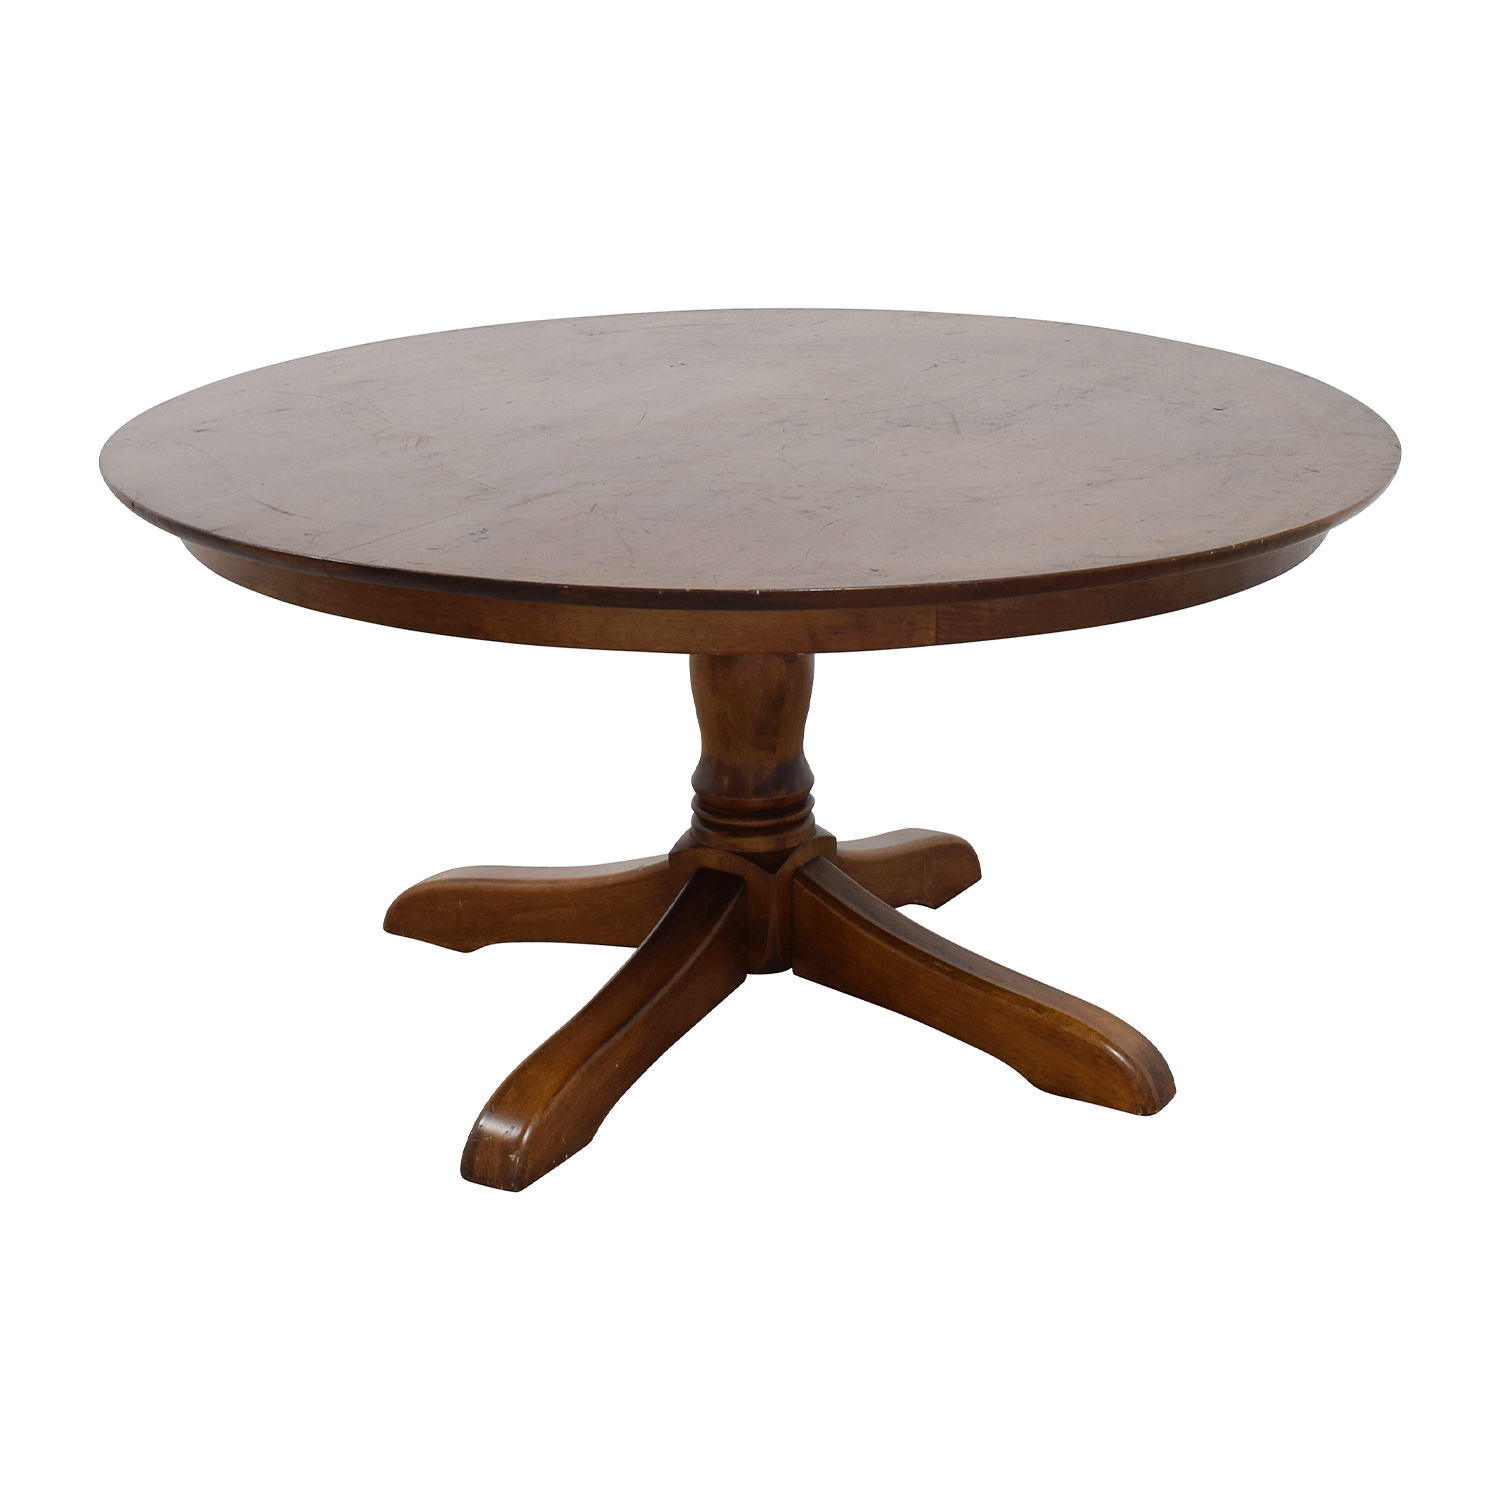 71 off abc home abc home mid century round dining table tables. Black Bedroom Furniture Sets. Home Design Ideas